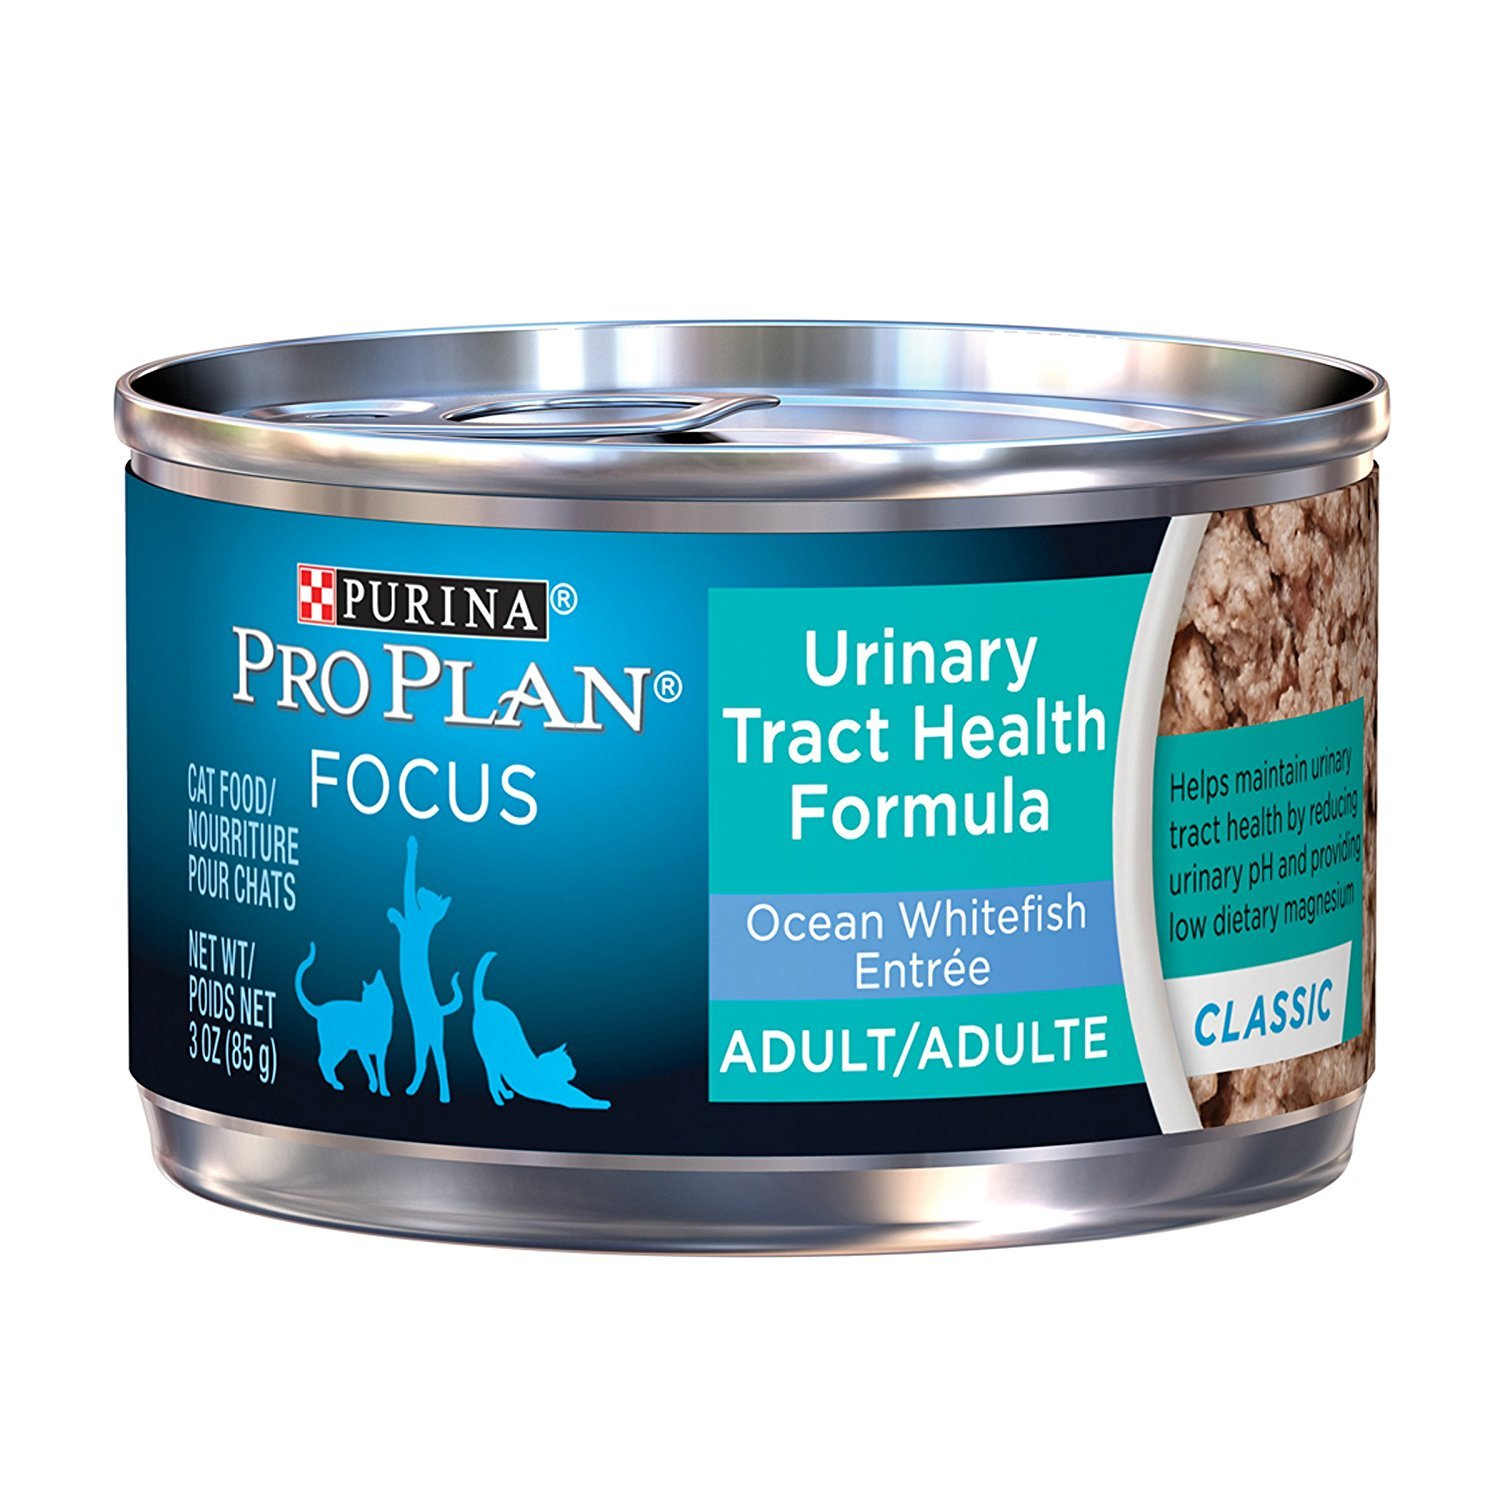 Purina Pro Plan Focus Adult Urinary Tract Health Formula Ocean Whitefish Entree Cat Food HTAOHL, 3 oz, 24 Count (5 Pack)